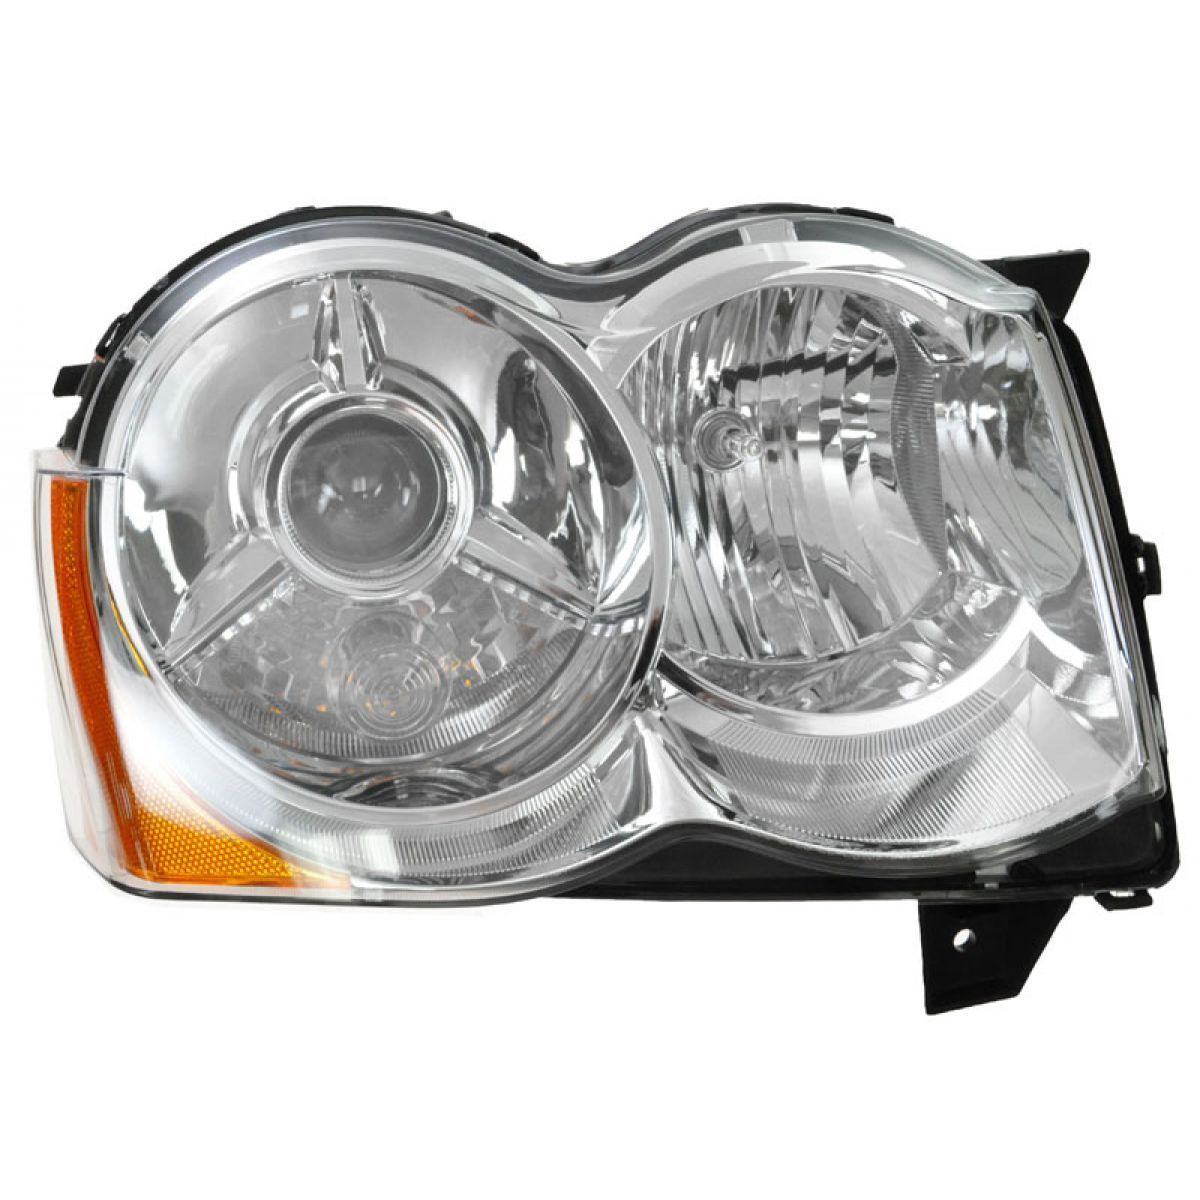 Jeep Grand Cherokee 2008 2009 2010 right passenger HID headlight